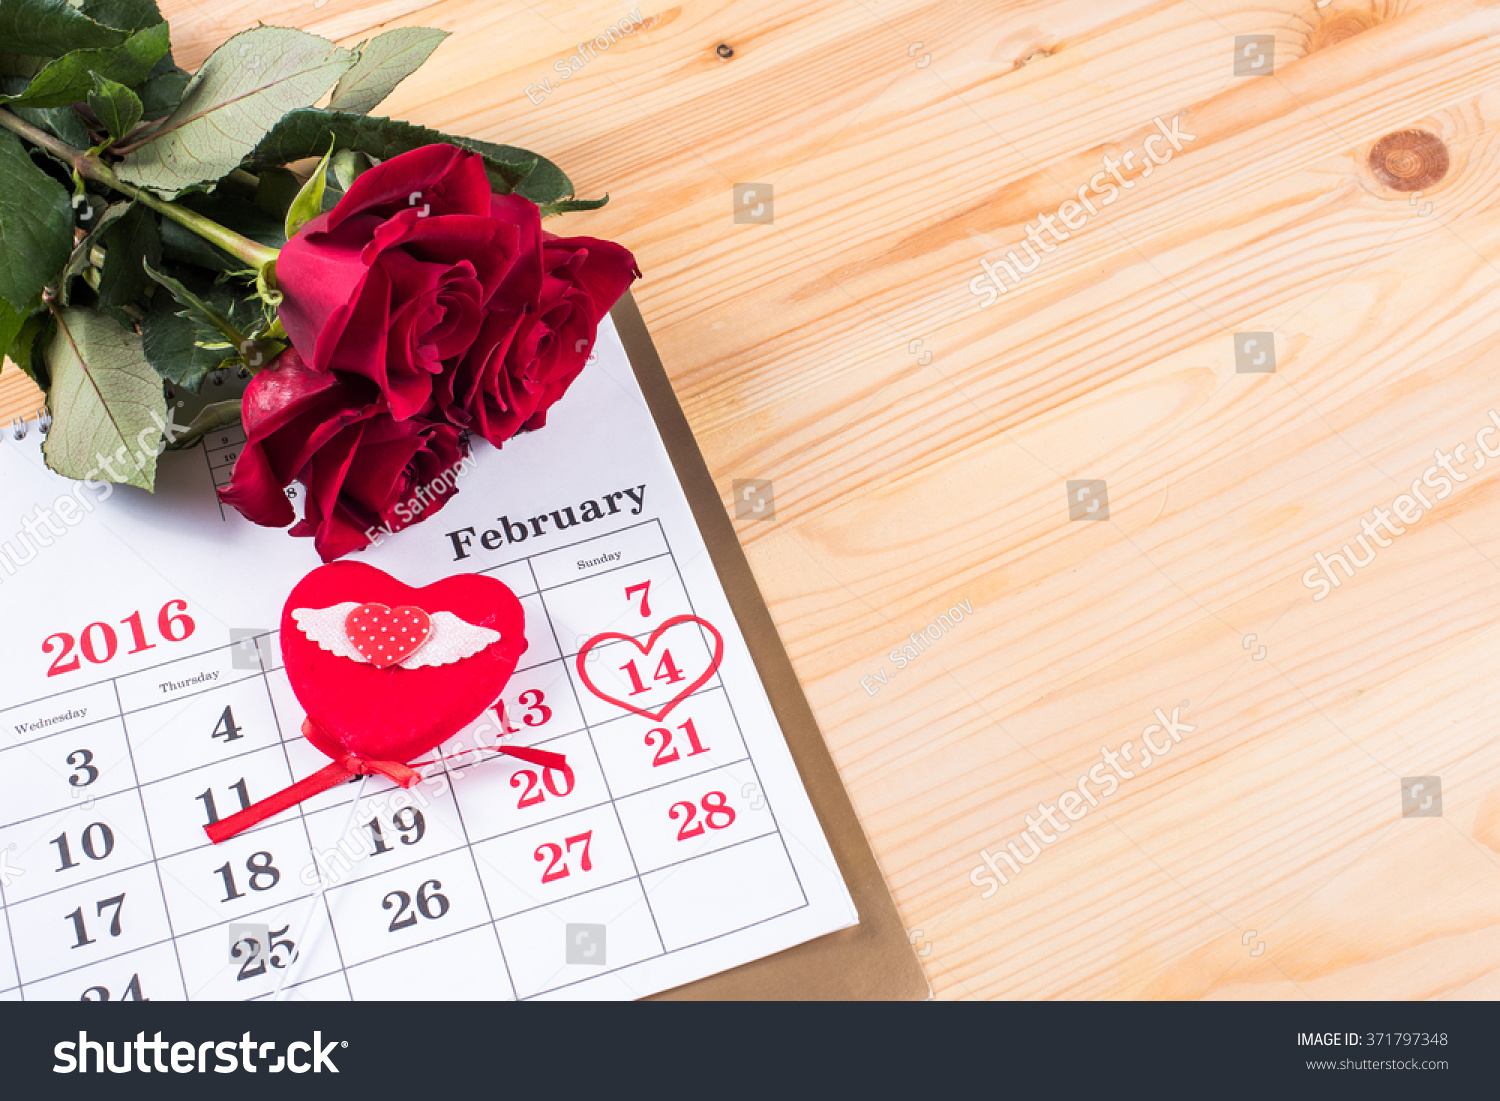 Calendar Rose Day : Calendar date february valentines stock photo